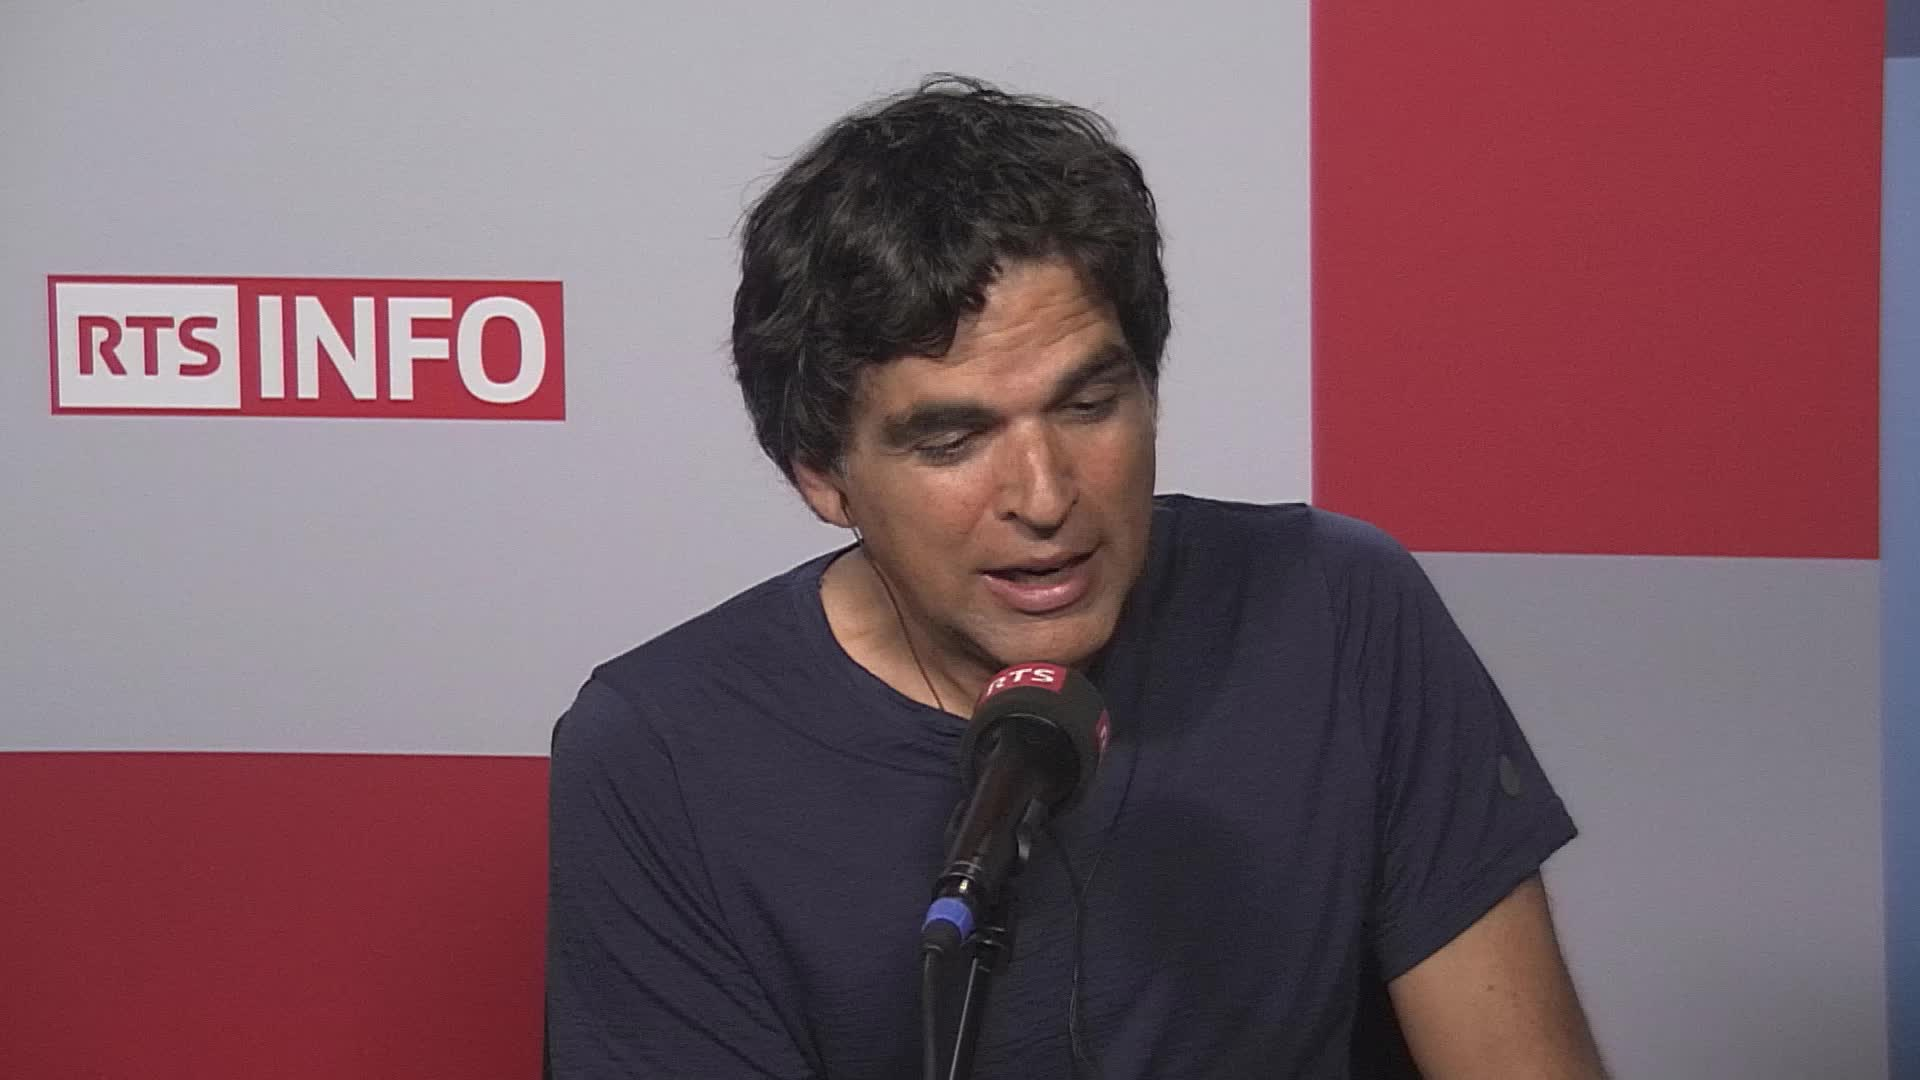 Le New York Times ne publiera plus de dessins politiques: interview de Patrick Chappatte